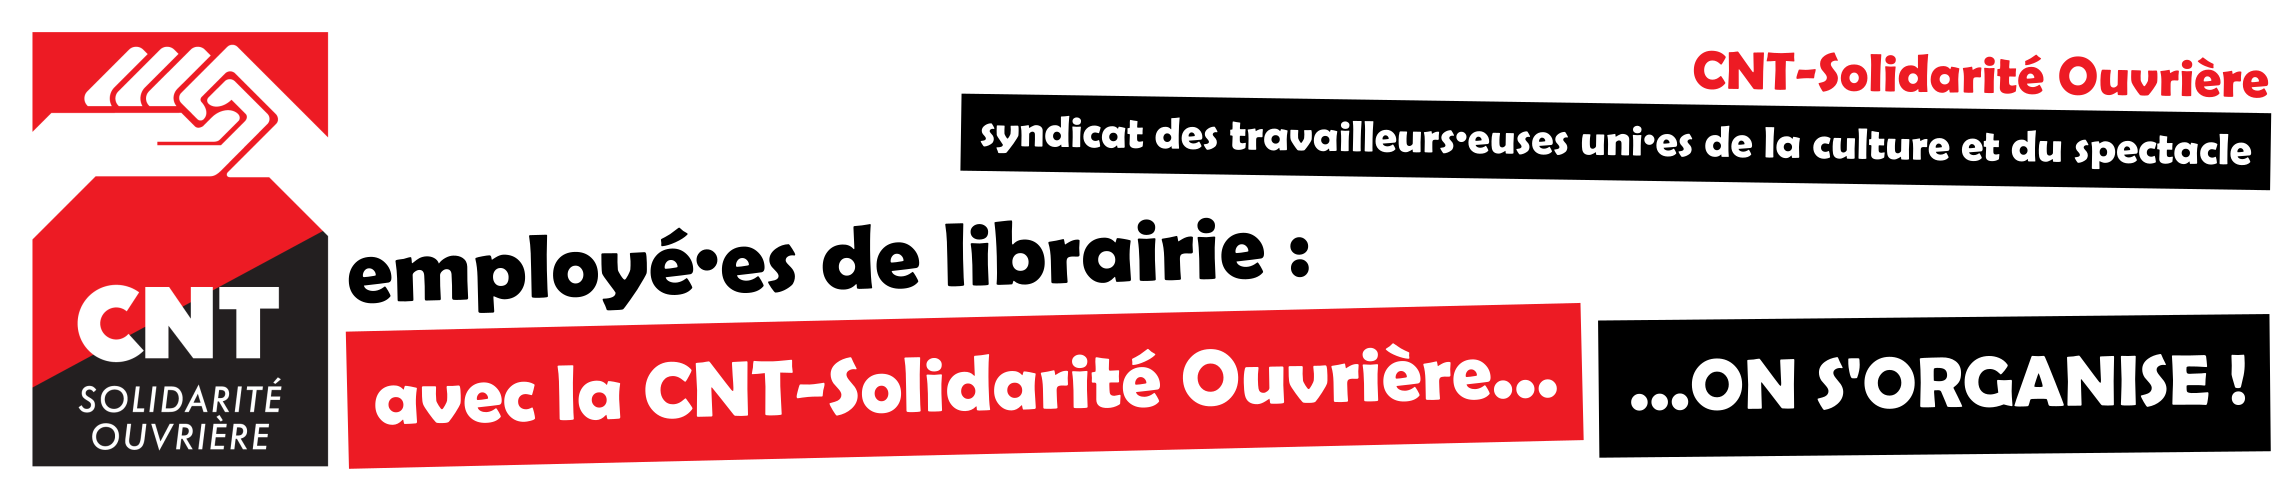 bandeau_tract_librairie.png